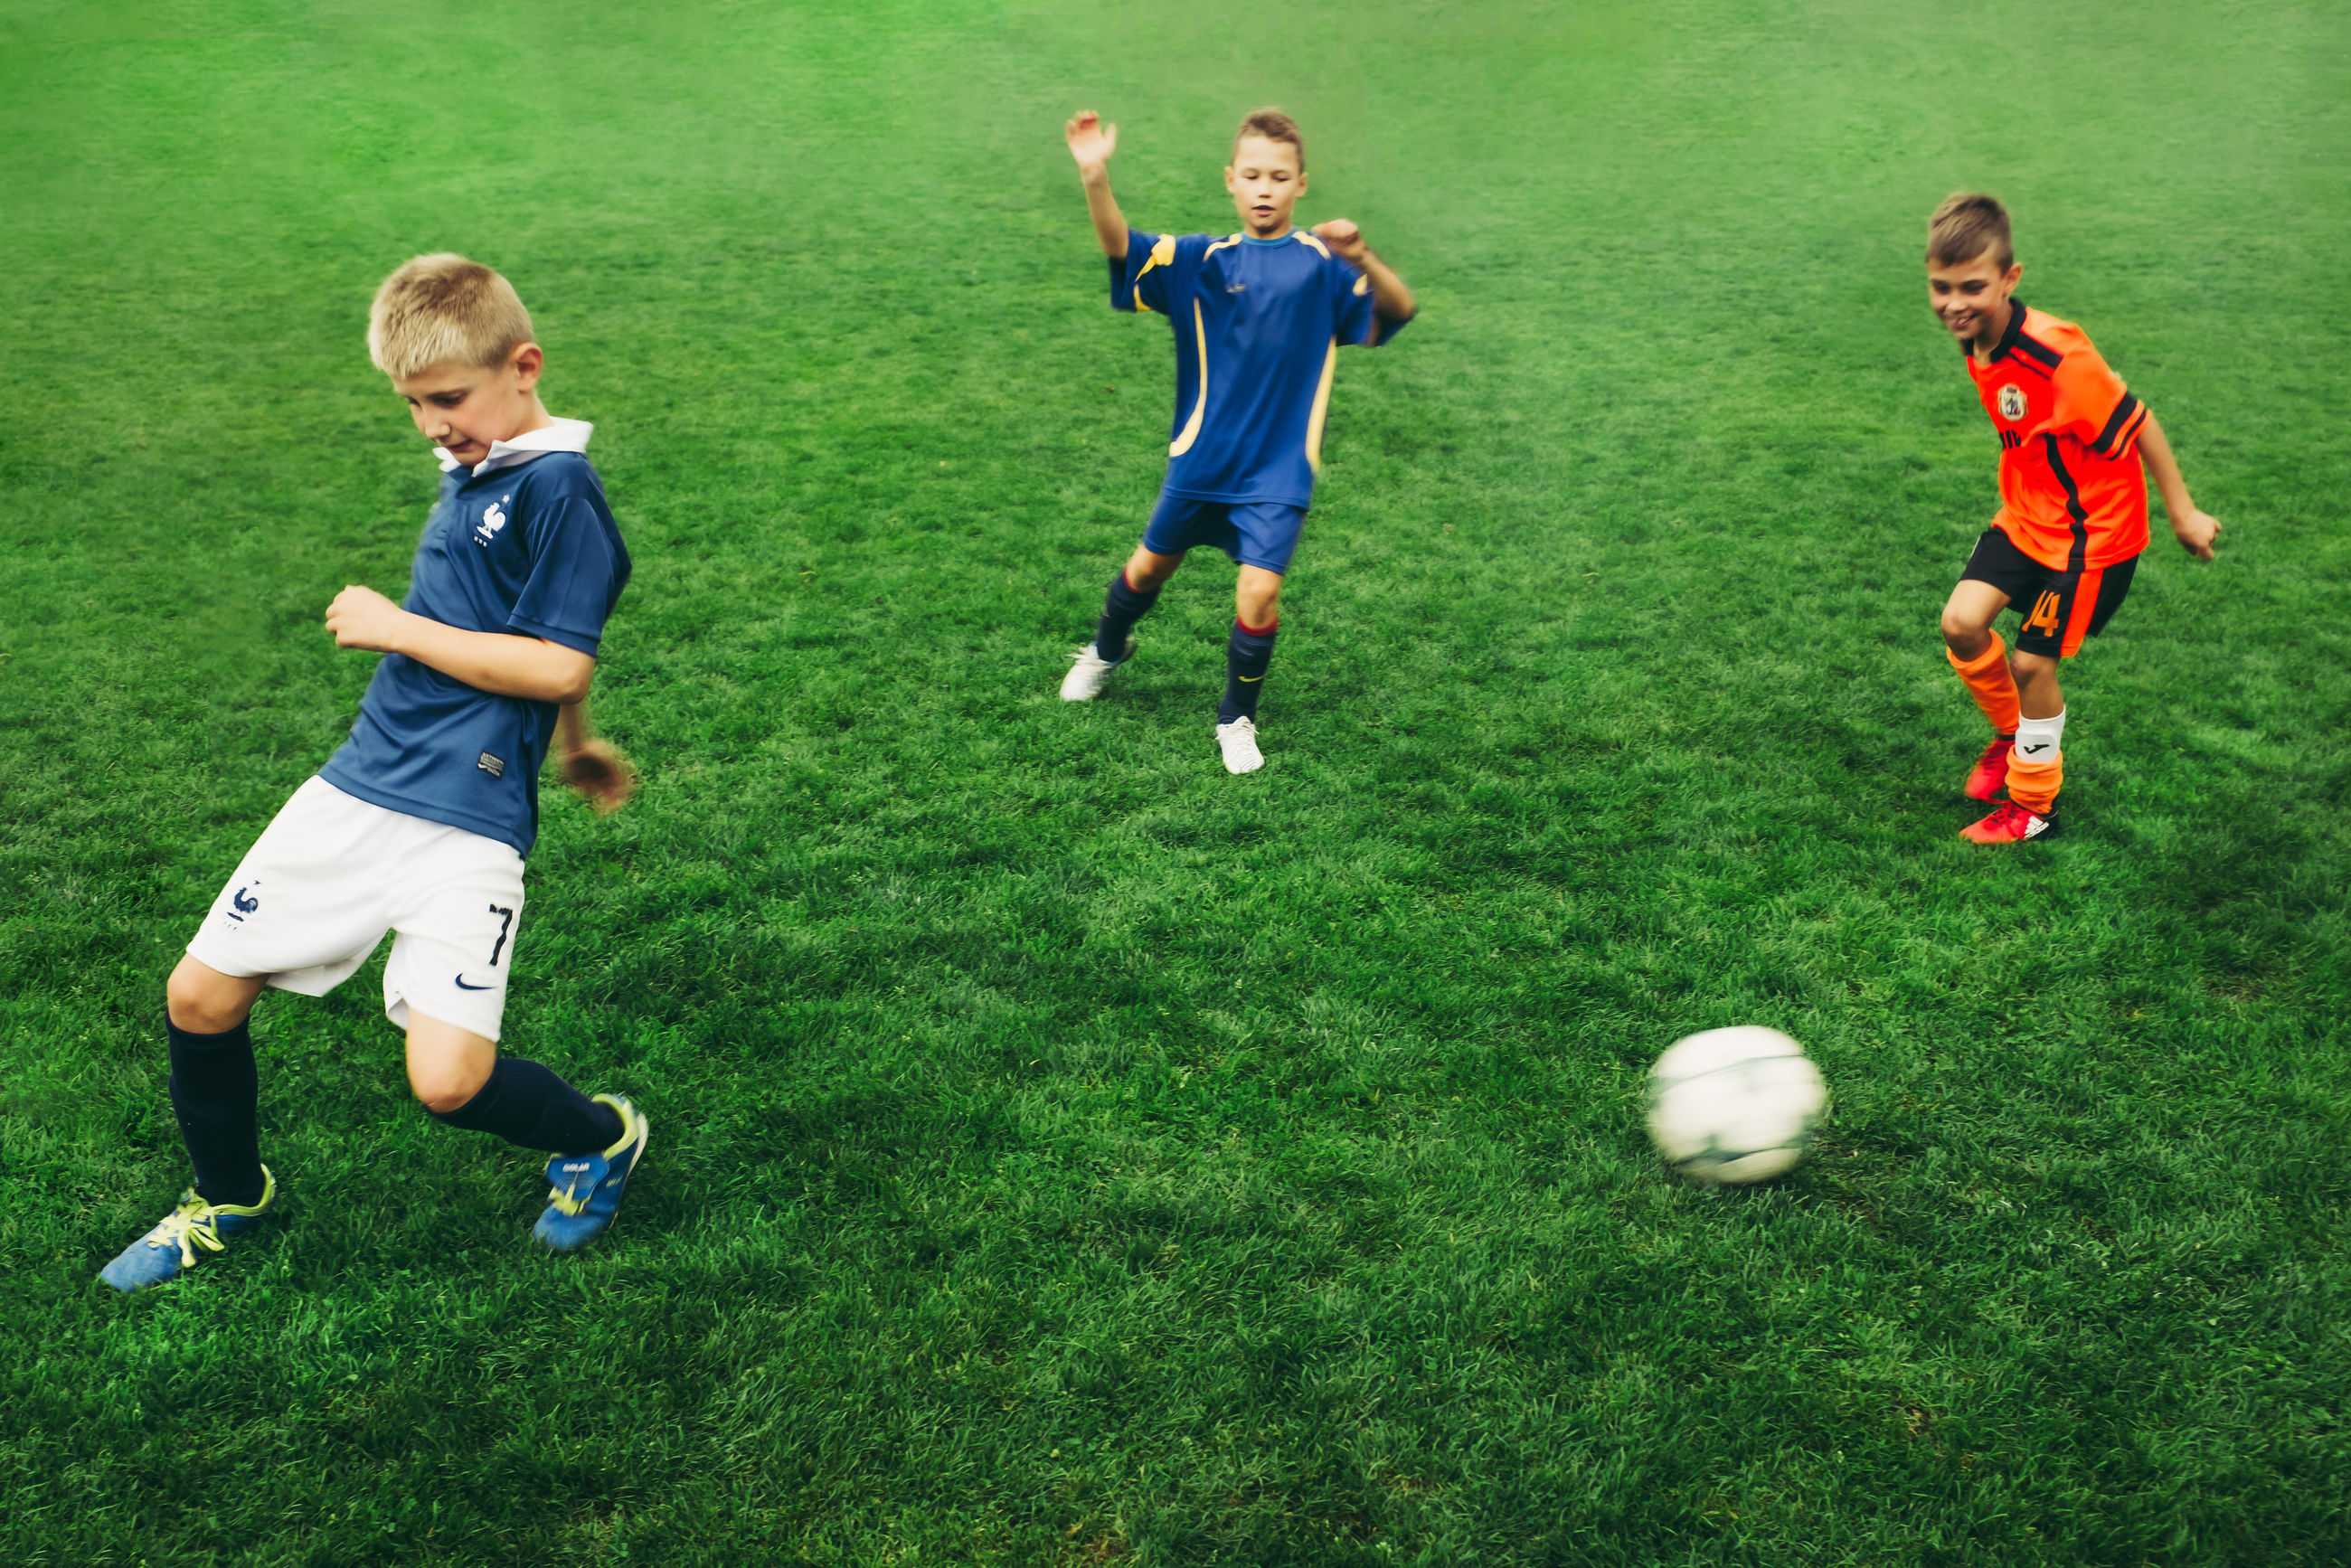 childhood, children only, soccer, boys, full length, child, grass, sport, playing, three people, soccer uniform, togetherness, sports team, day, soccer player, soccer ball, fun, motion, friendship, only boys, sports clothing, outdoors, sports uniform, soccer field, teamwork, people